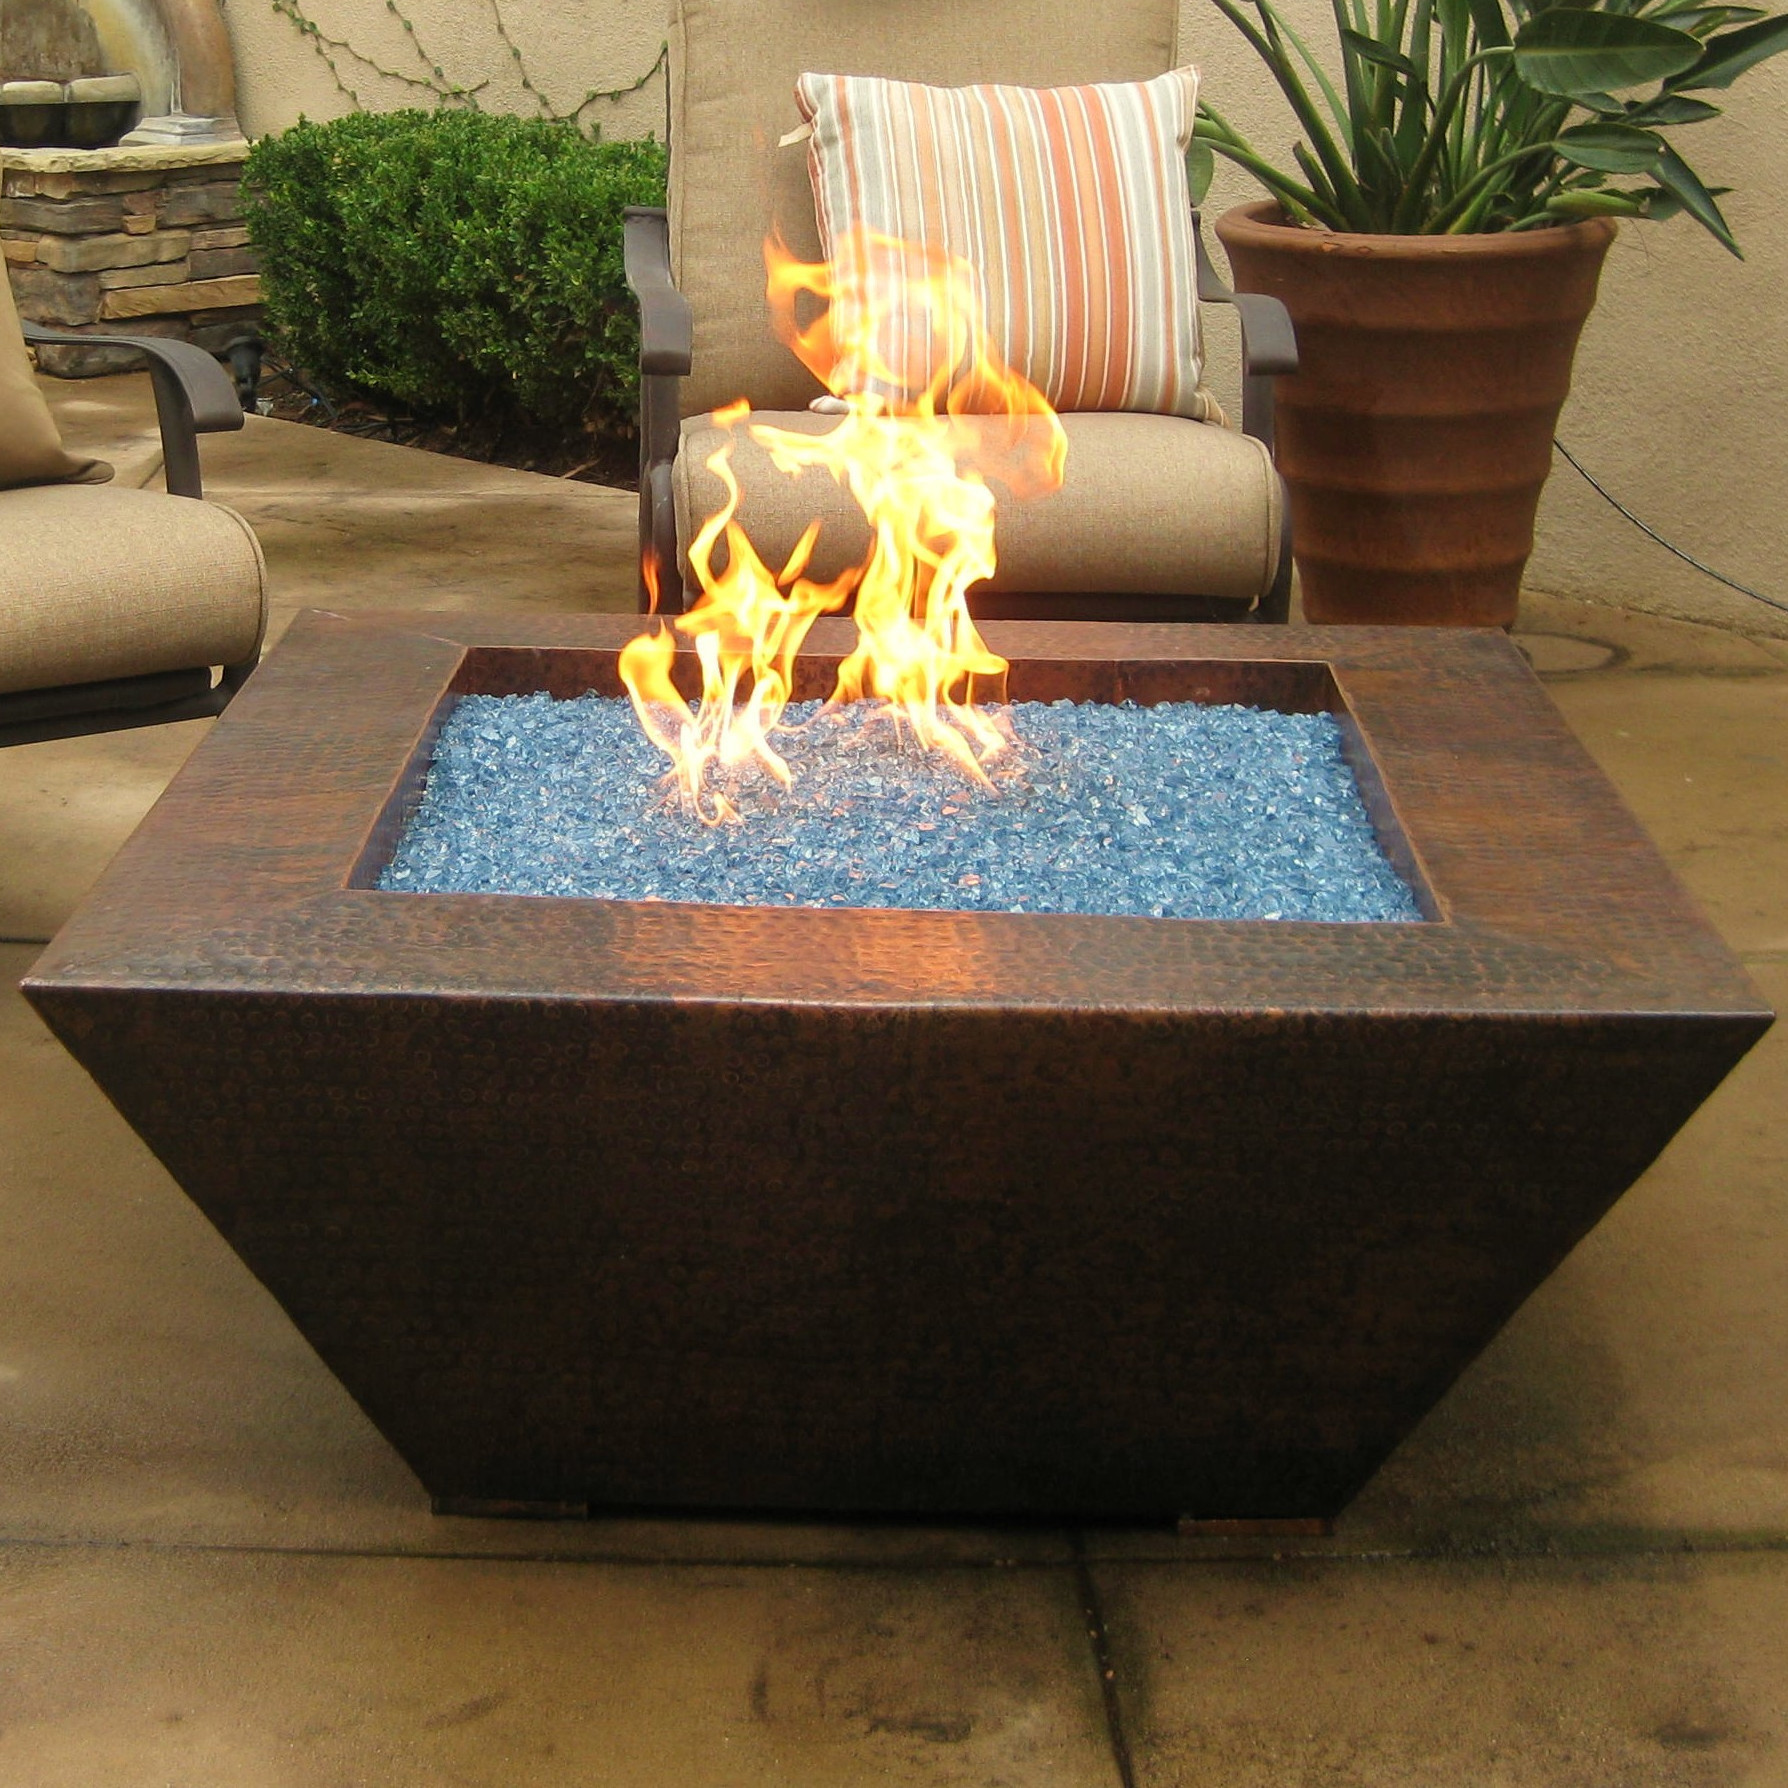 Propane Fire Pit Coffee Table  10 Outdoor Propane Fire Pit Coffee Table